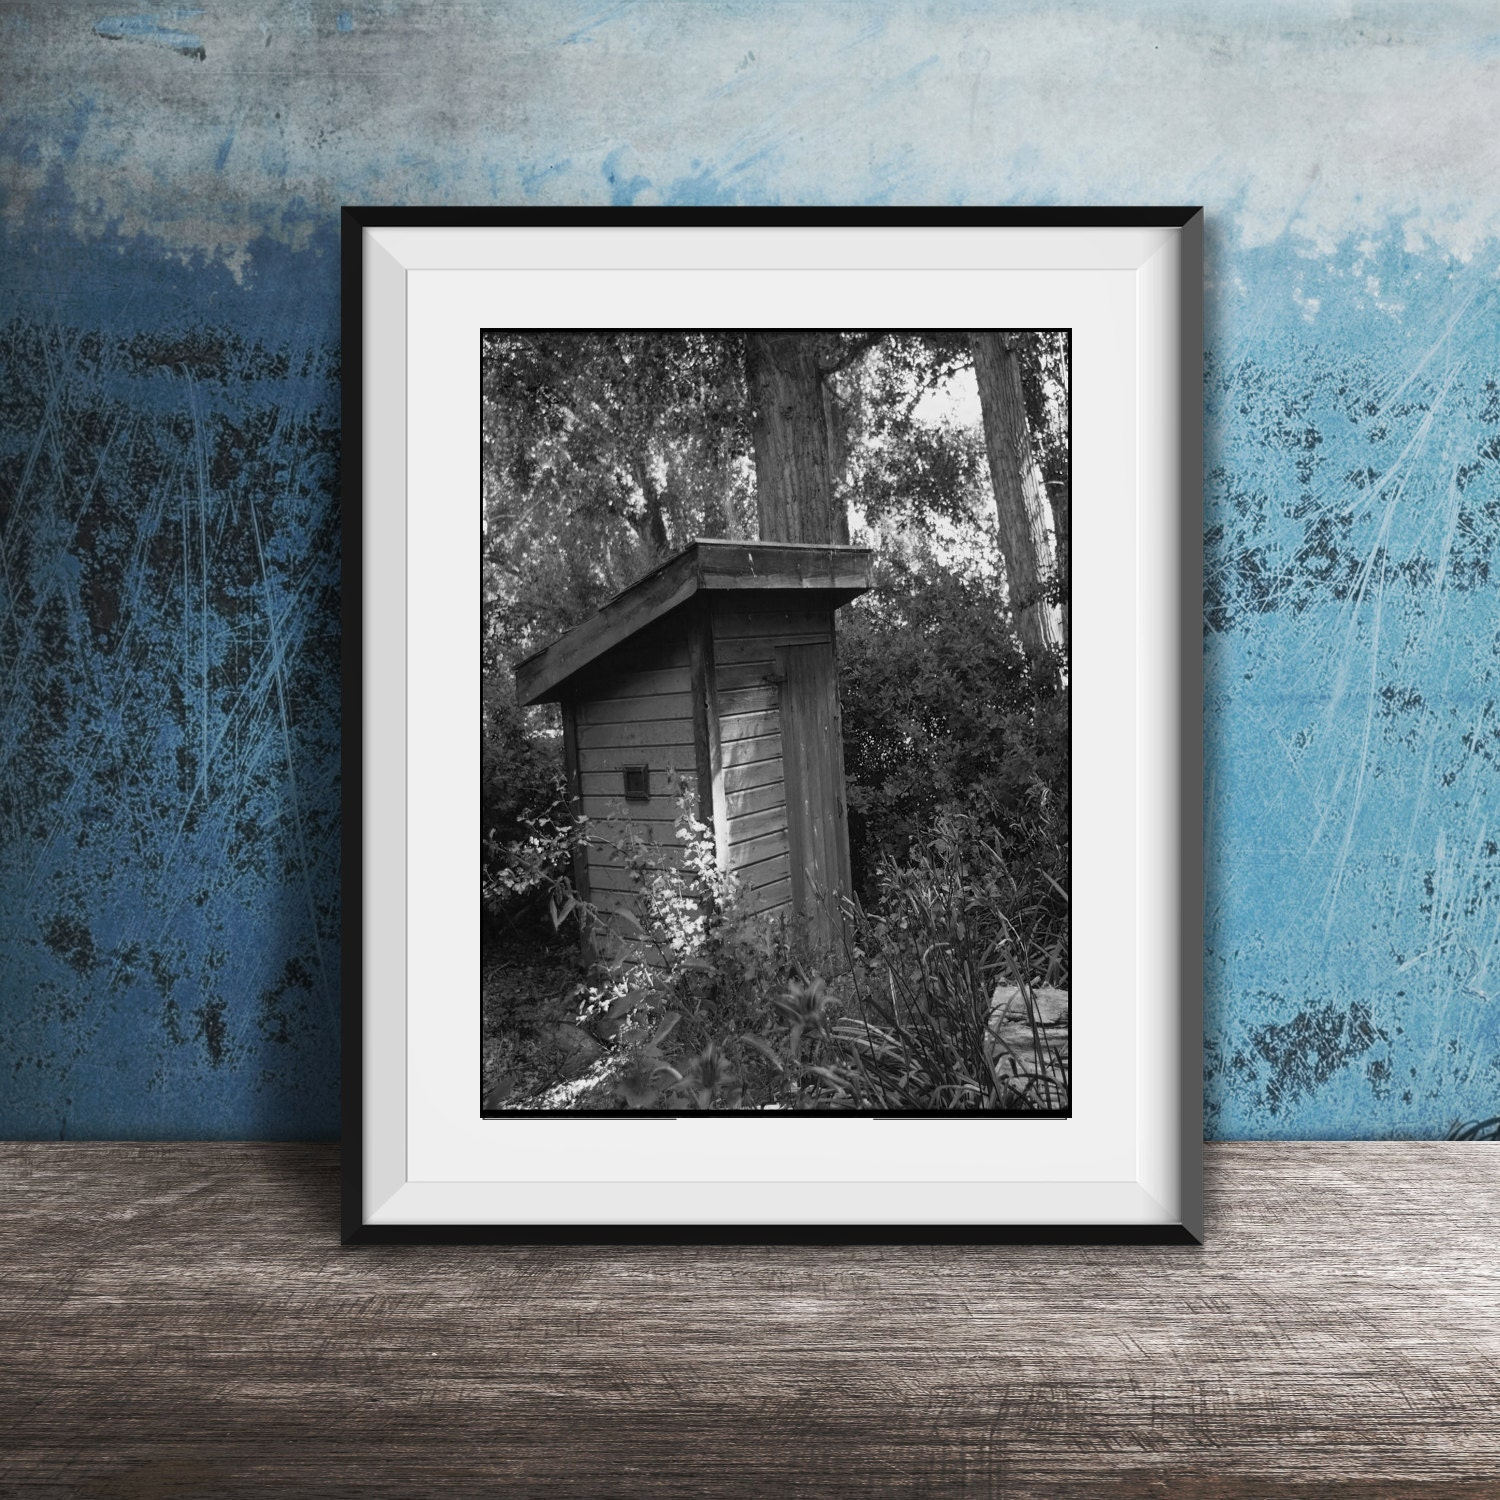 Superb Framed Bathroom Wall Art   Vintage Outhouse Photo   Modern Farmhouse Decor    Funny Bathroom Art   Powder Room Framed Art